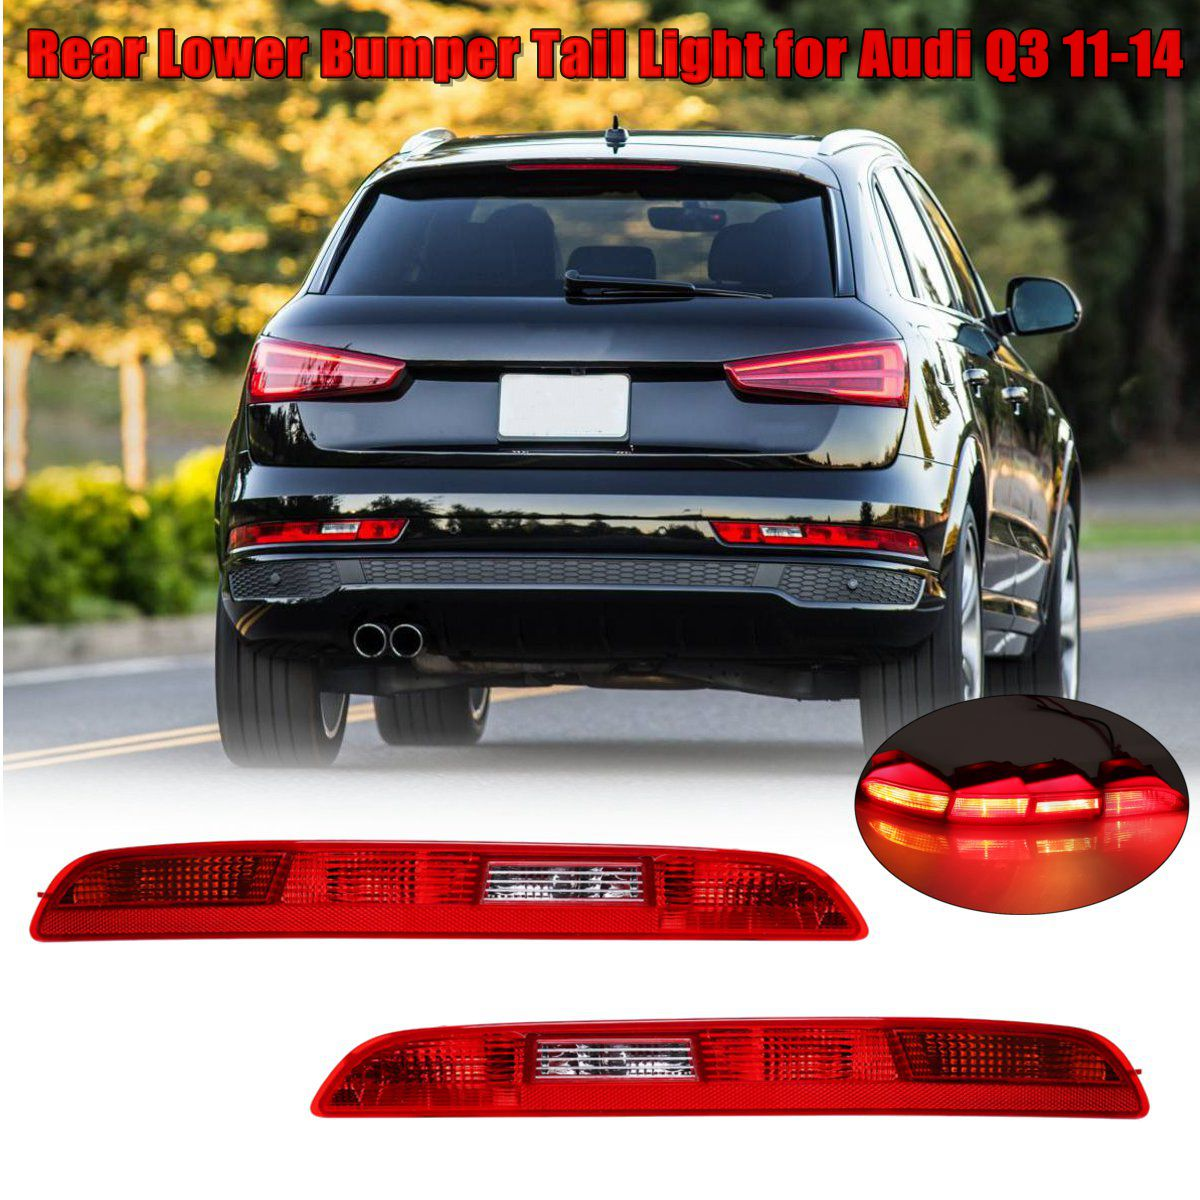 Left/Right Car Rear Side Lower Bumper Fog Lamps Tail Light Red Reverse Brake Halogen Auto Lower For AUDI Q3 2011 2012 2013 2014Left/Right Car Rear Side Lower Bumper Fog Lamps Tail Light Red Reverse Brake Halogen Auto Lower For AUDI Q3 2011 2012 2013 2014